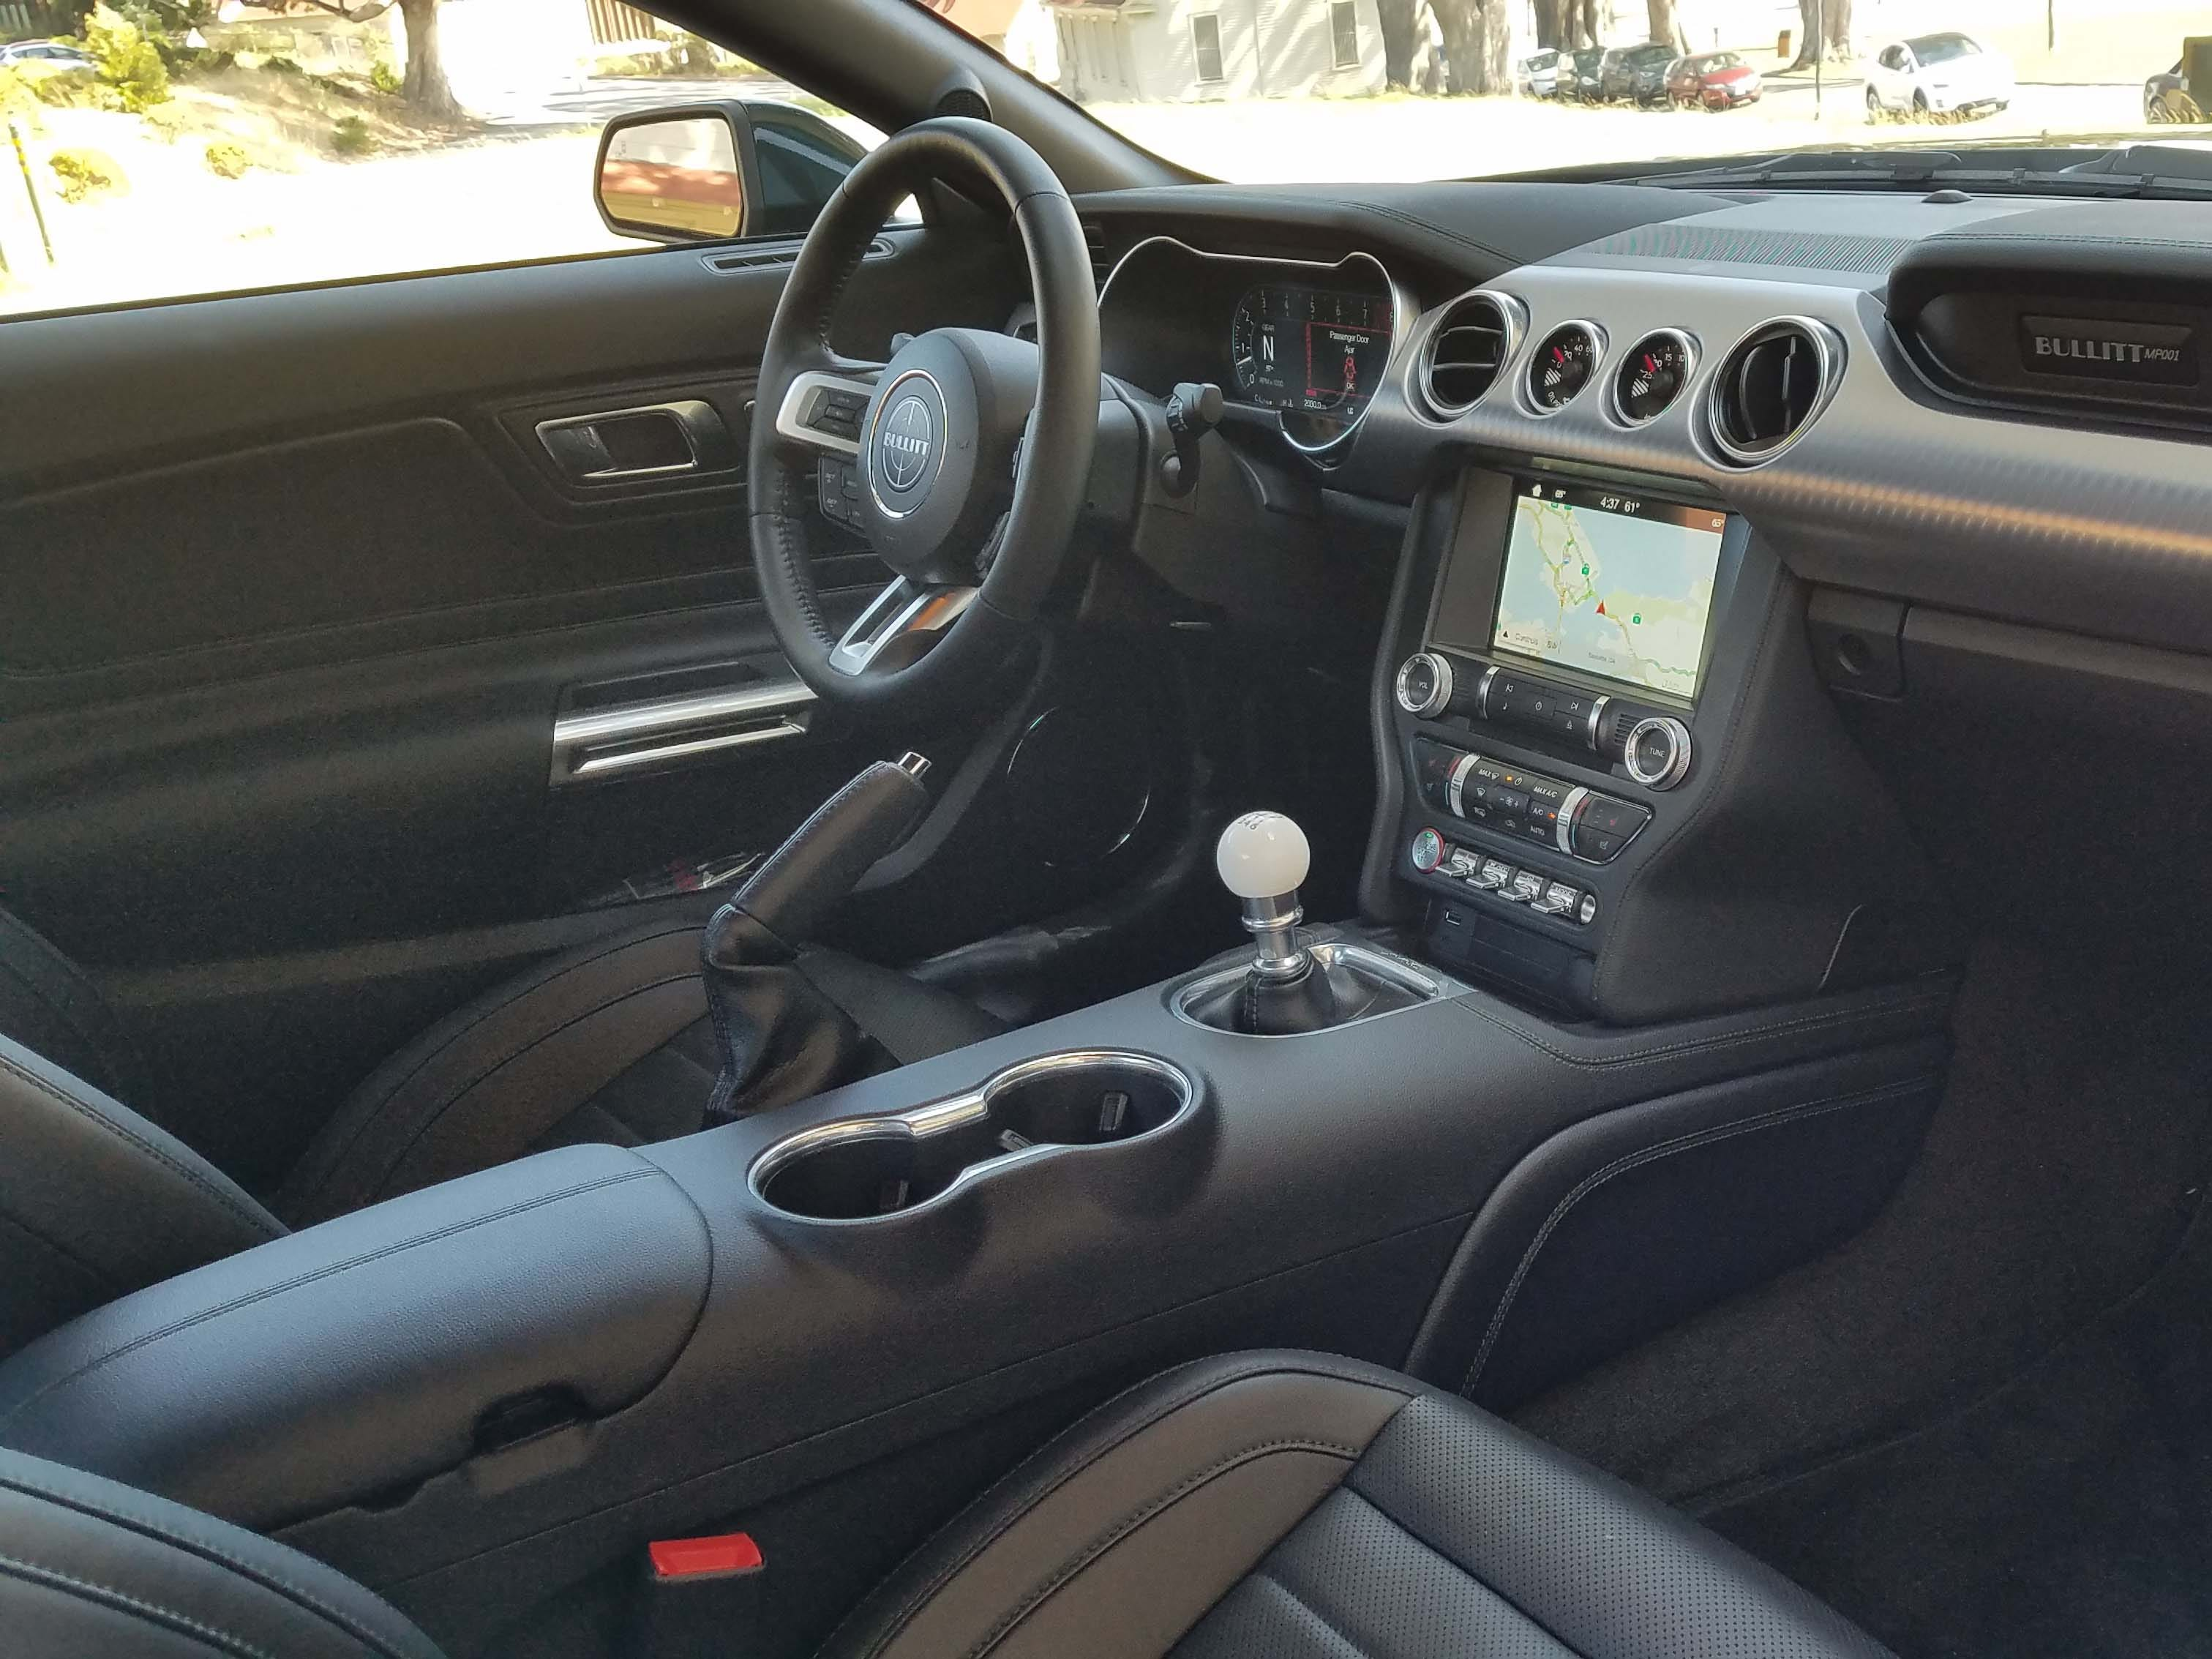 """The interior of the 2019 Ford Mustang Bullitt is nicely laid out with a stitched console and leather seats. The car comes in manual only with the signature """"cueball"""" shifter, though the movie car featured a Porsche shifter courtesy of Porsche fan Steve McQueen."""